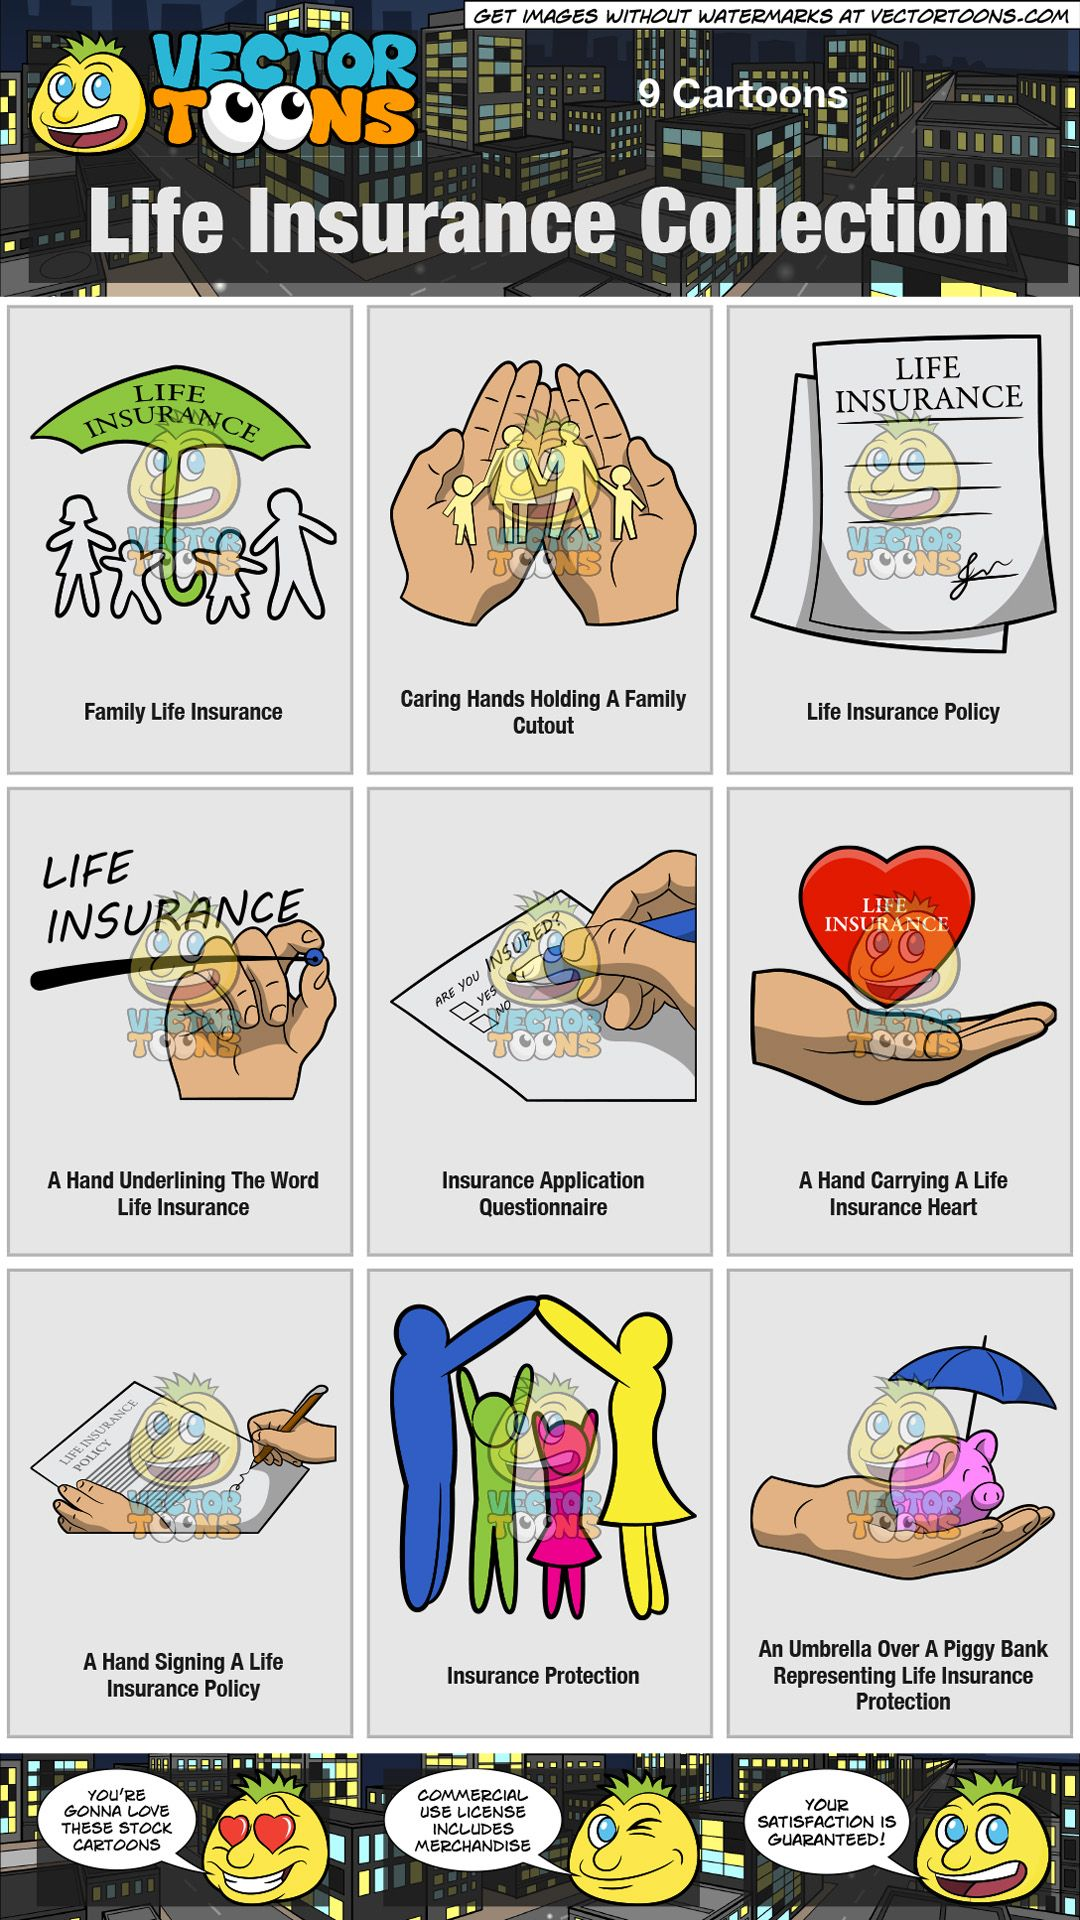 Life insurance collection family life insurance life